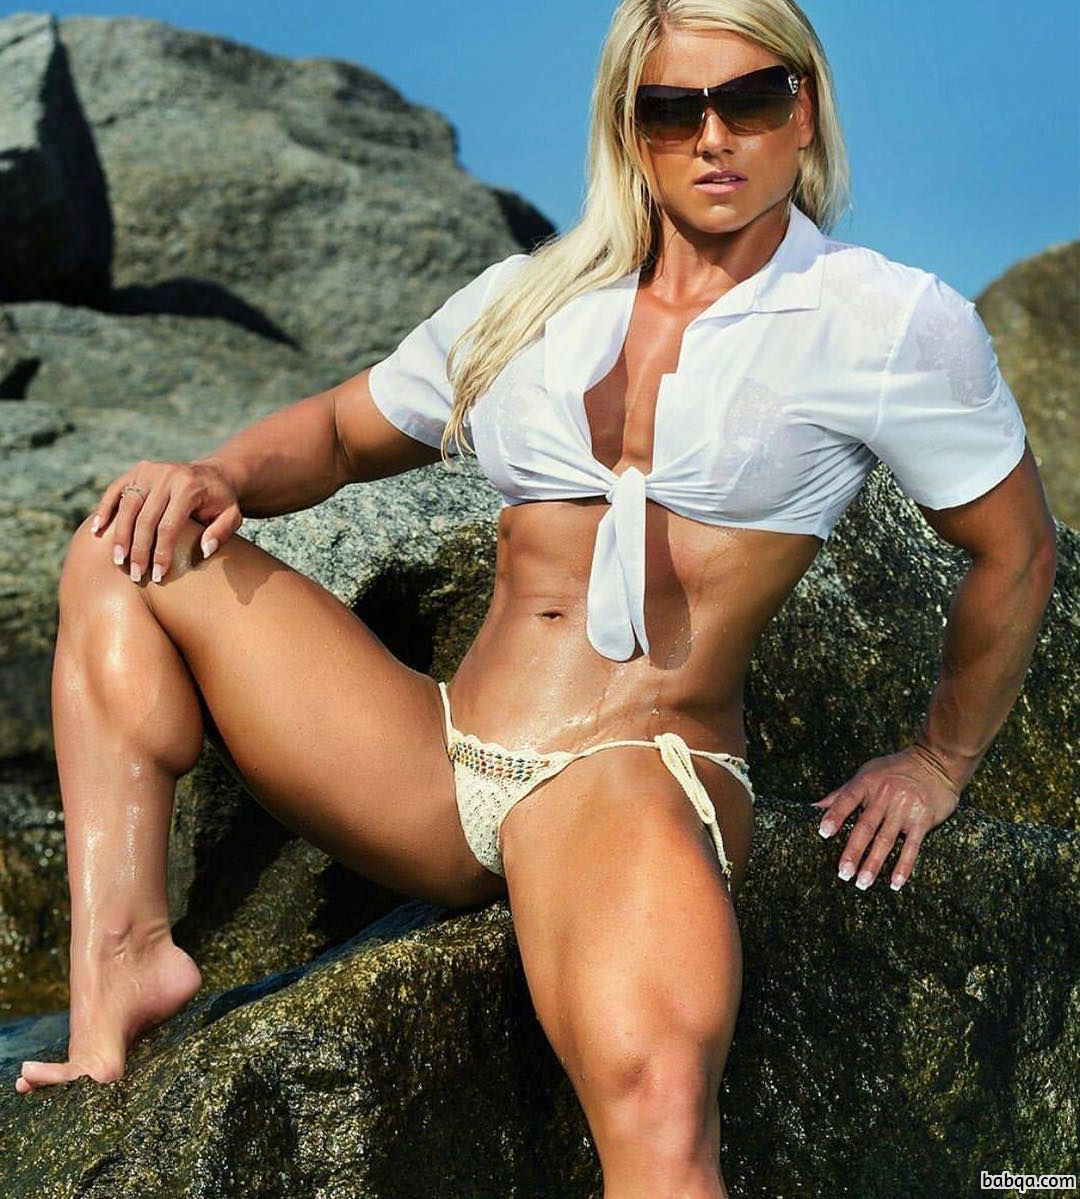 perfect girl with fitness body and muscle legs image from tumblr